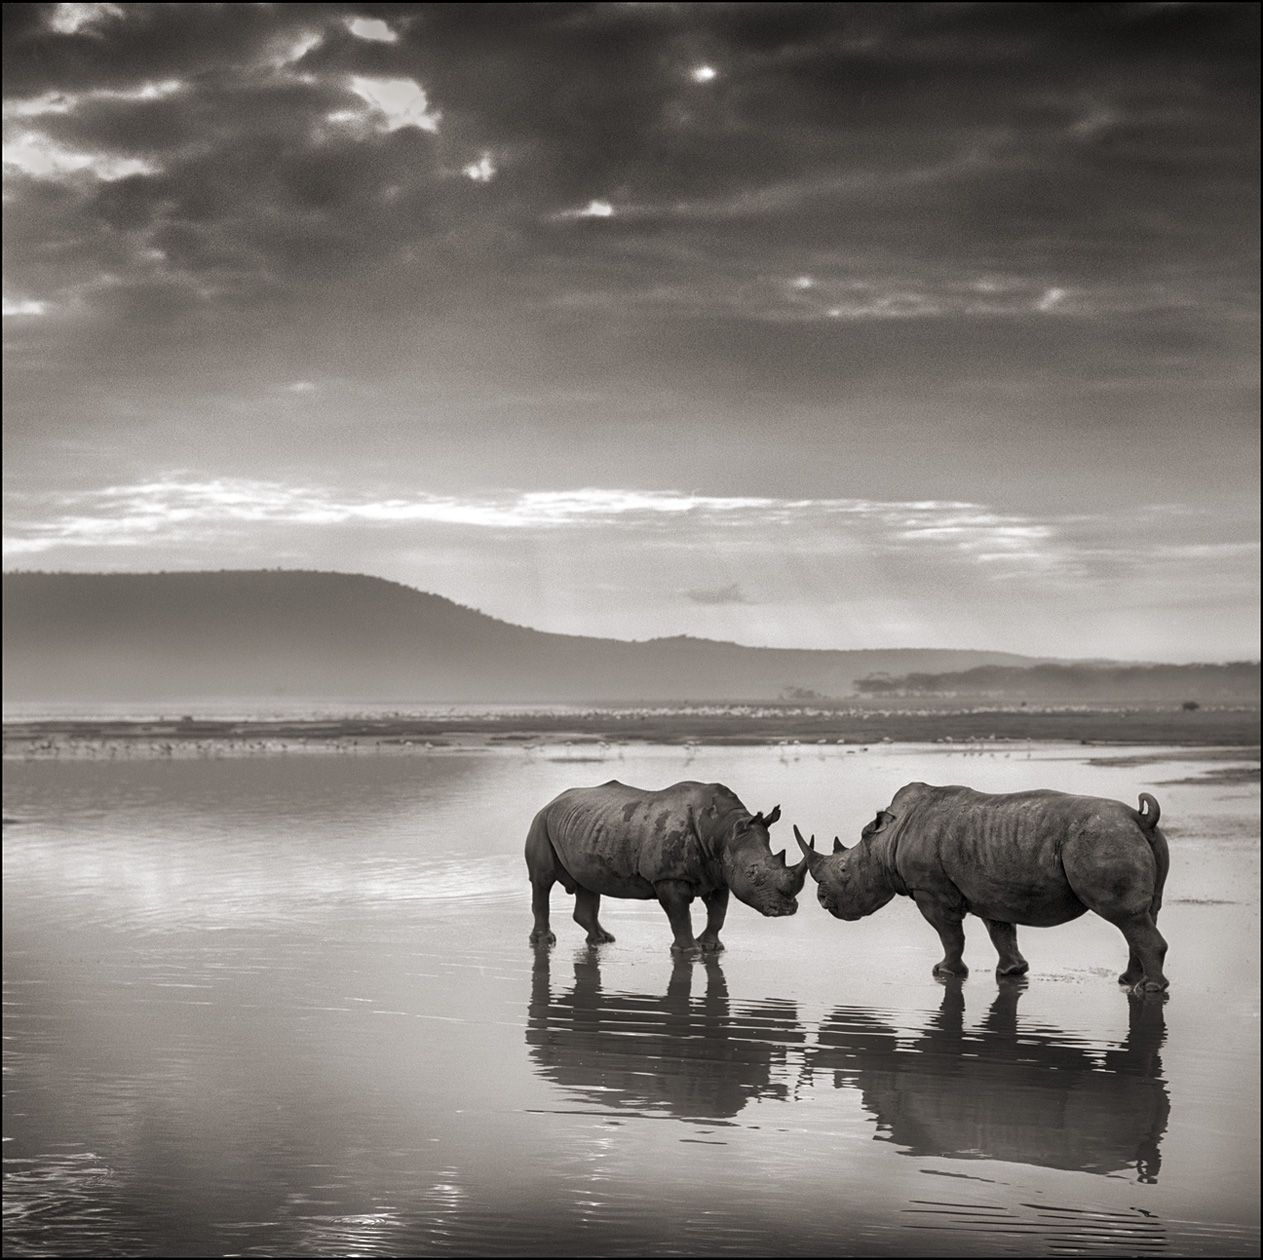 """Rhinos in Lake"" - Lake Nakuru 2007 - ©Nick Brandt"